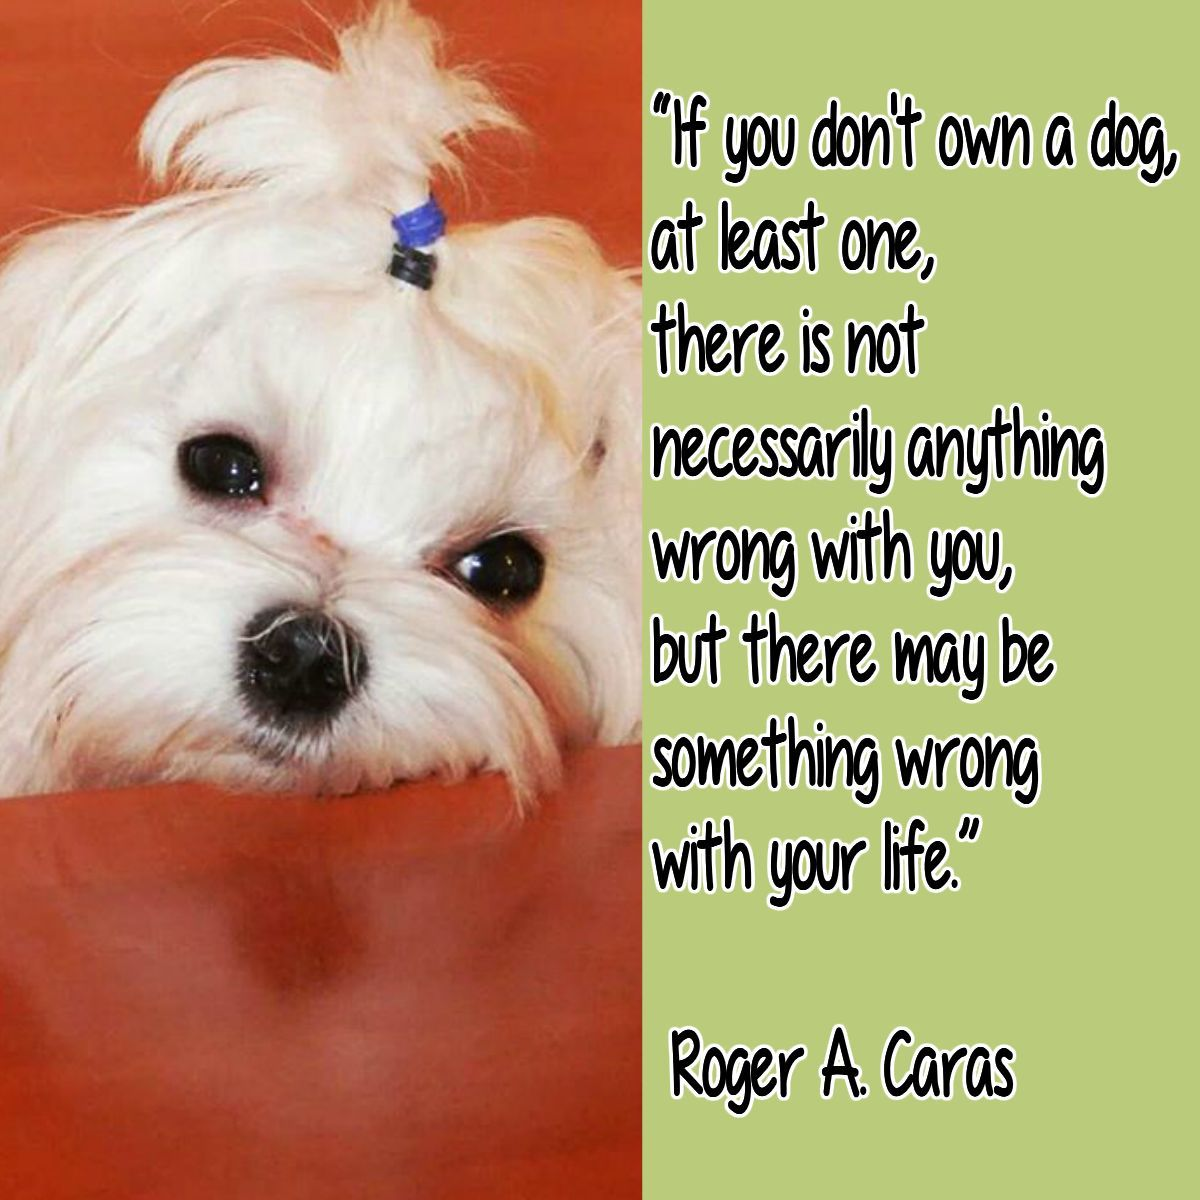 Maltese Dogs Quotes So True Cute And Funny The Dog Quotes To